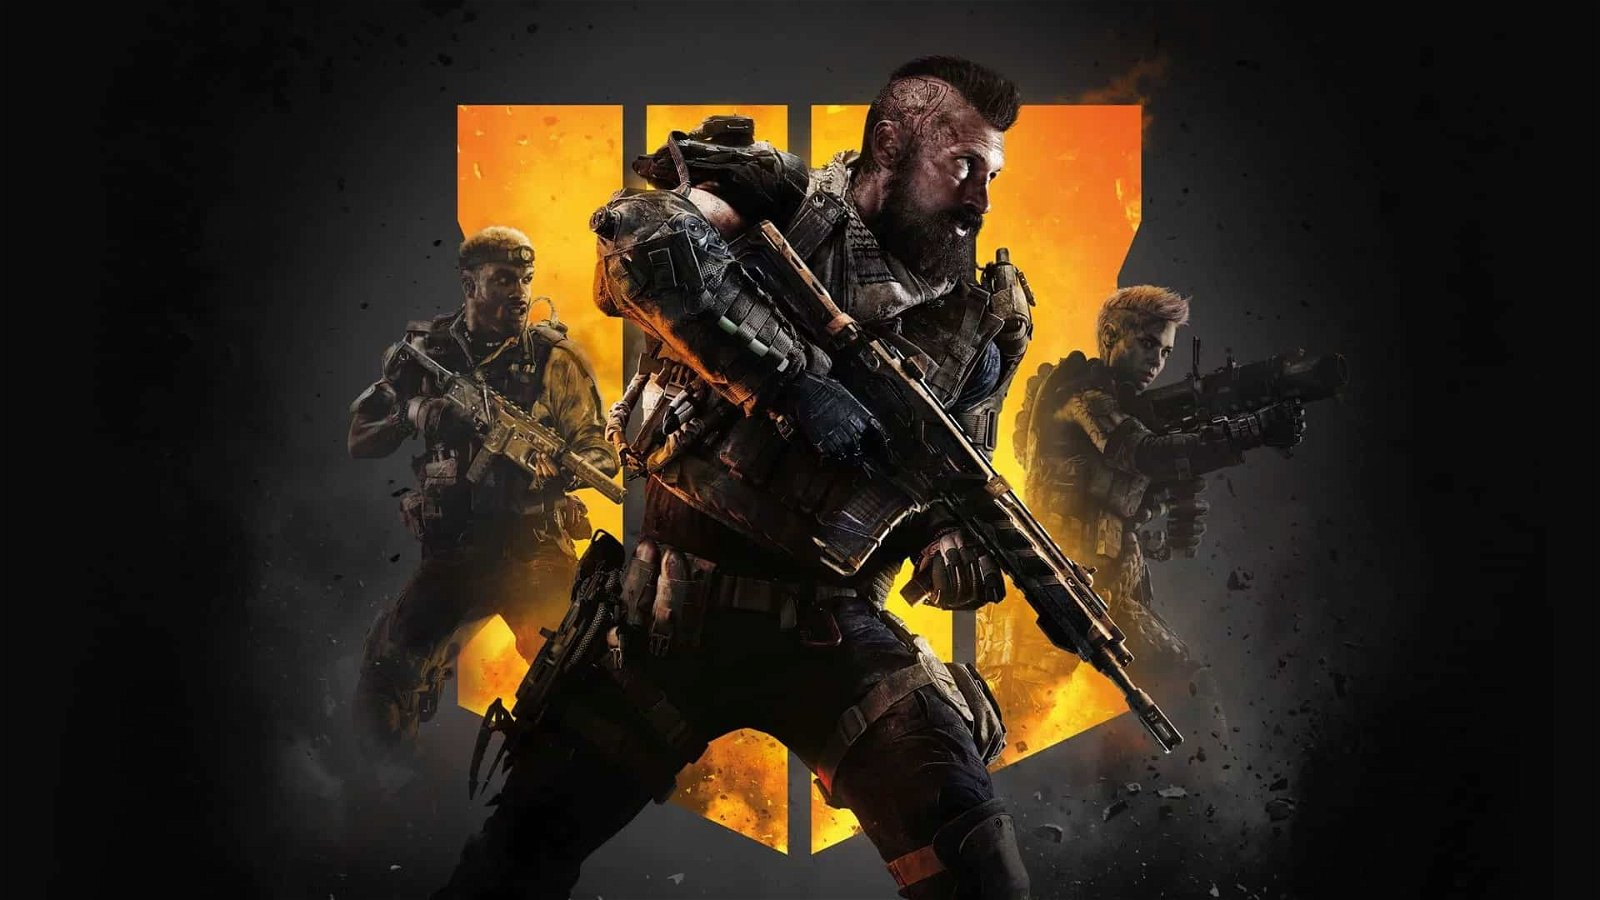 Call of Duty: Black Ops 4 — Multiplayer And A Deeper Gameplay Experience